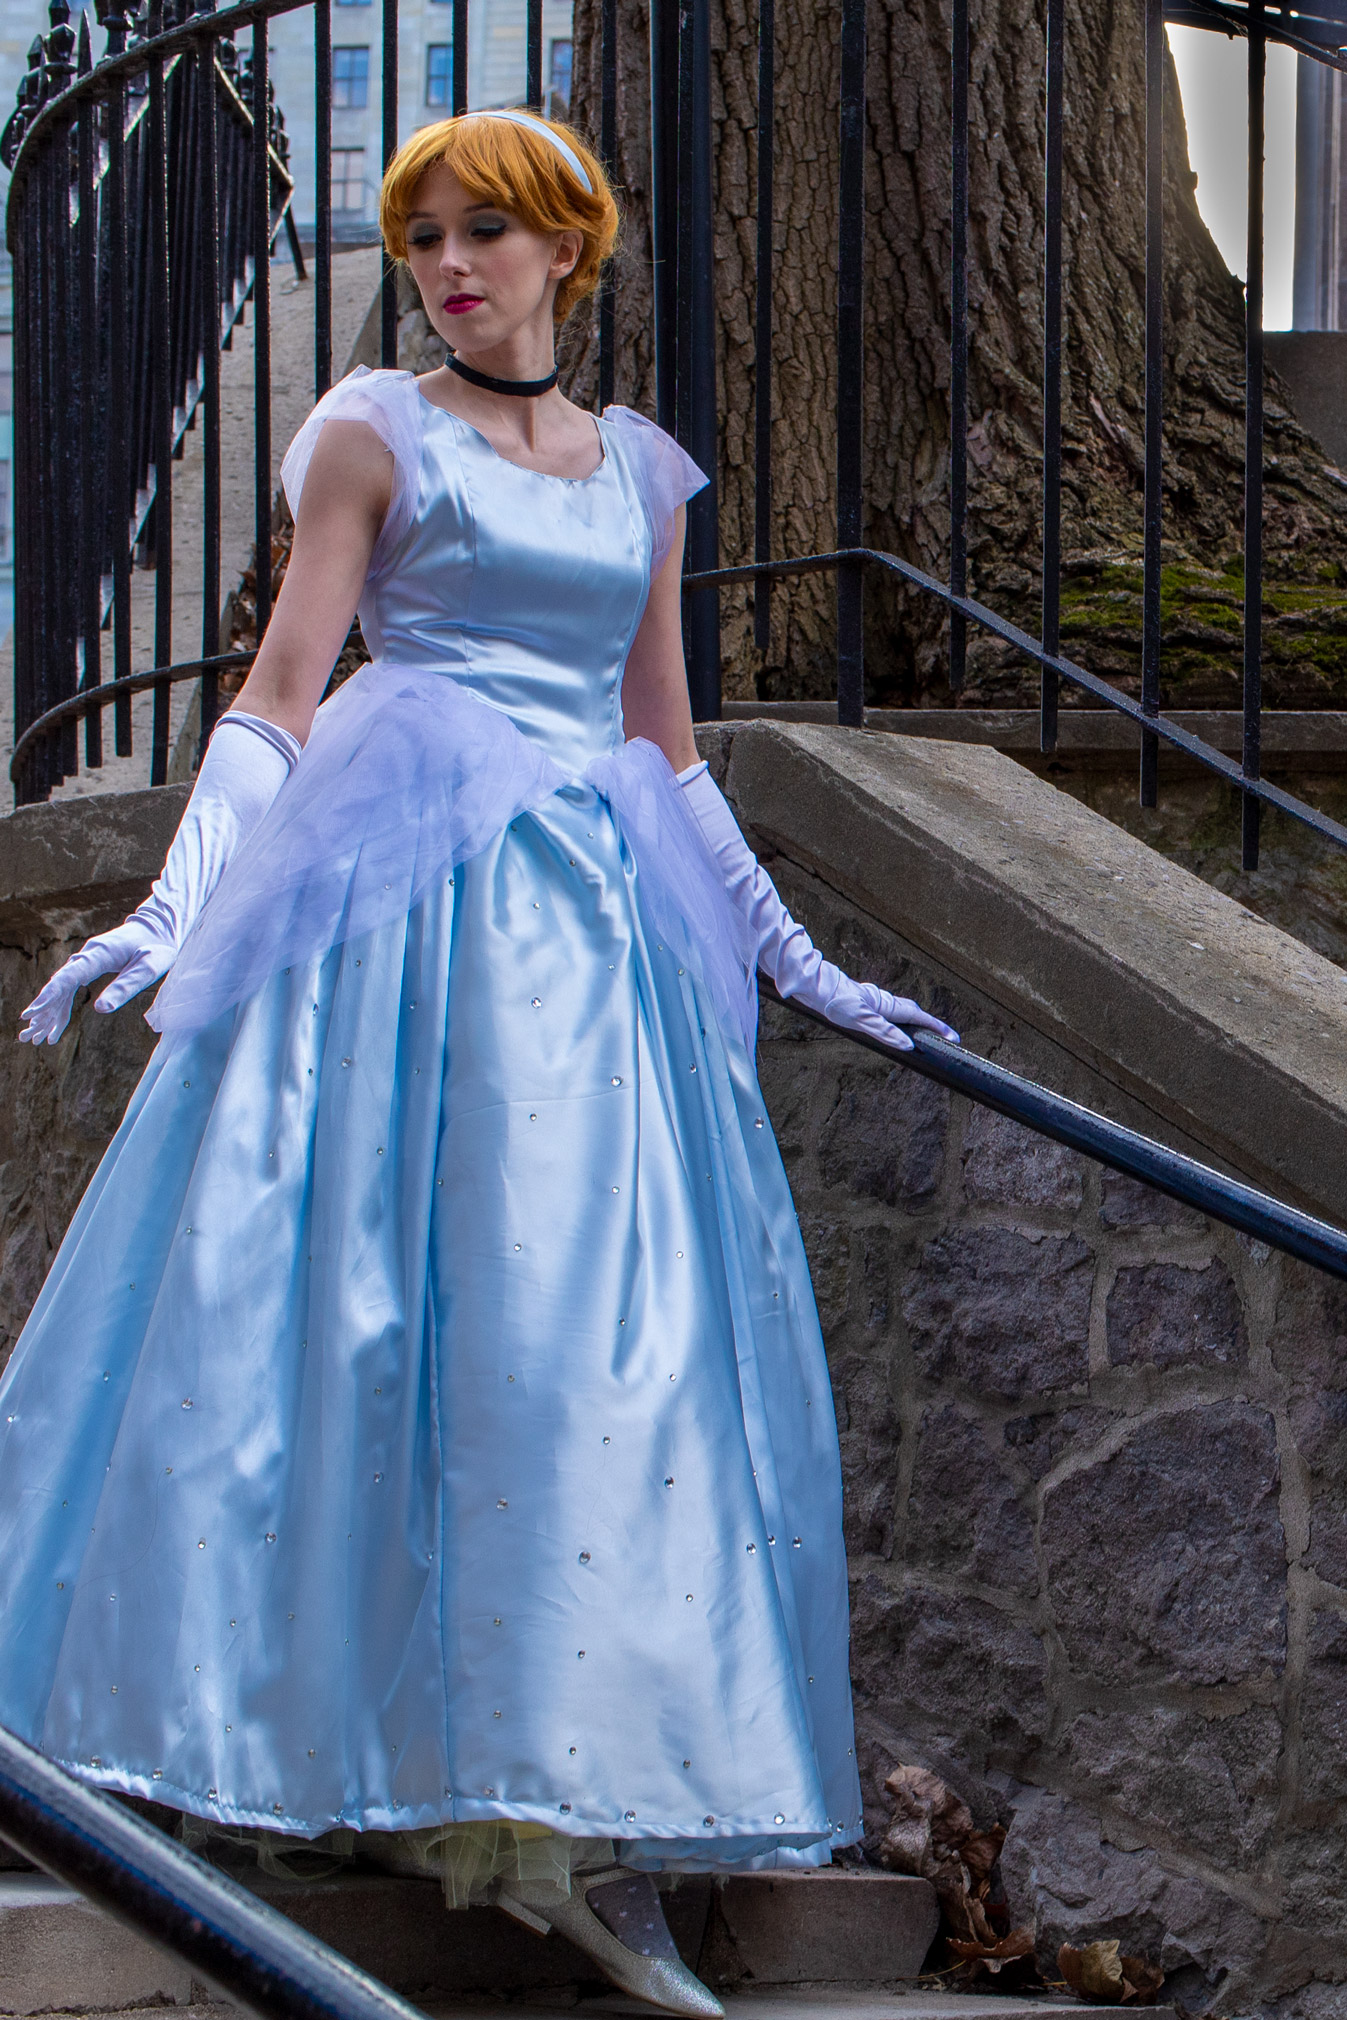 Woman dressed as Cinderella walking down a staircase